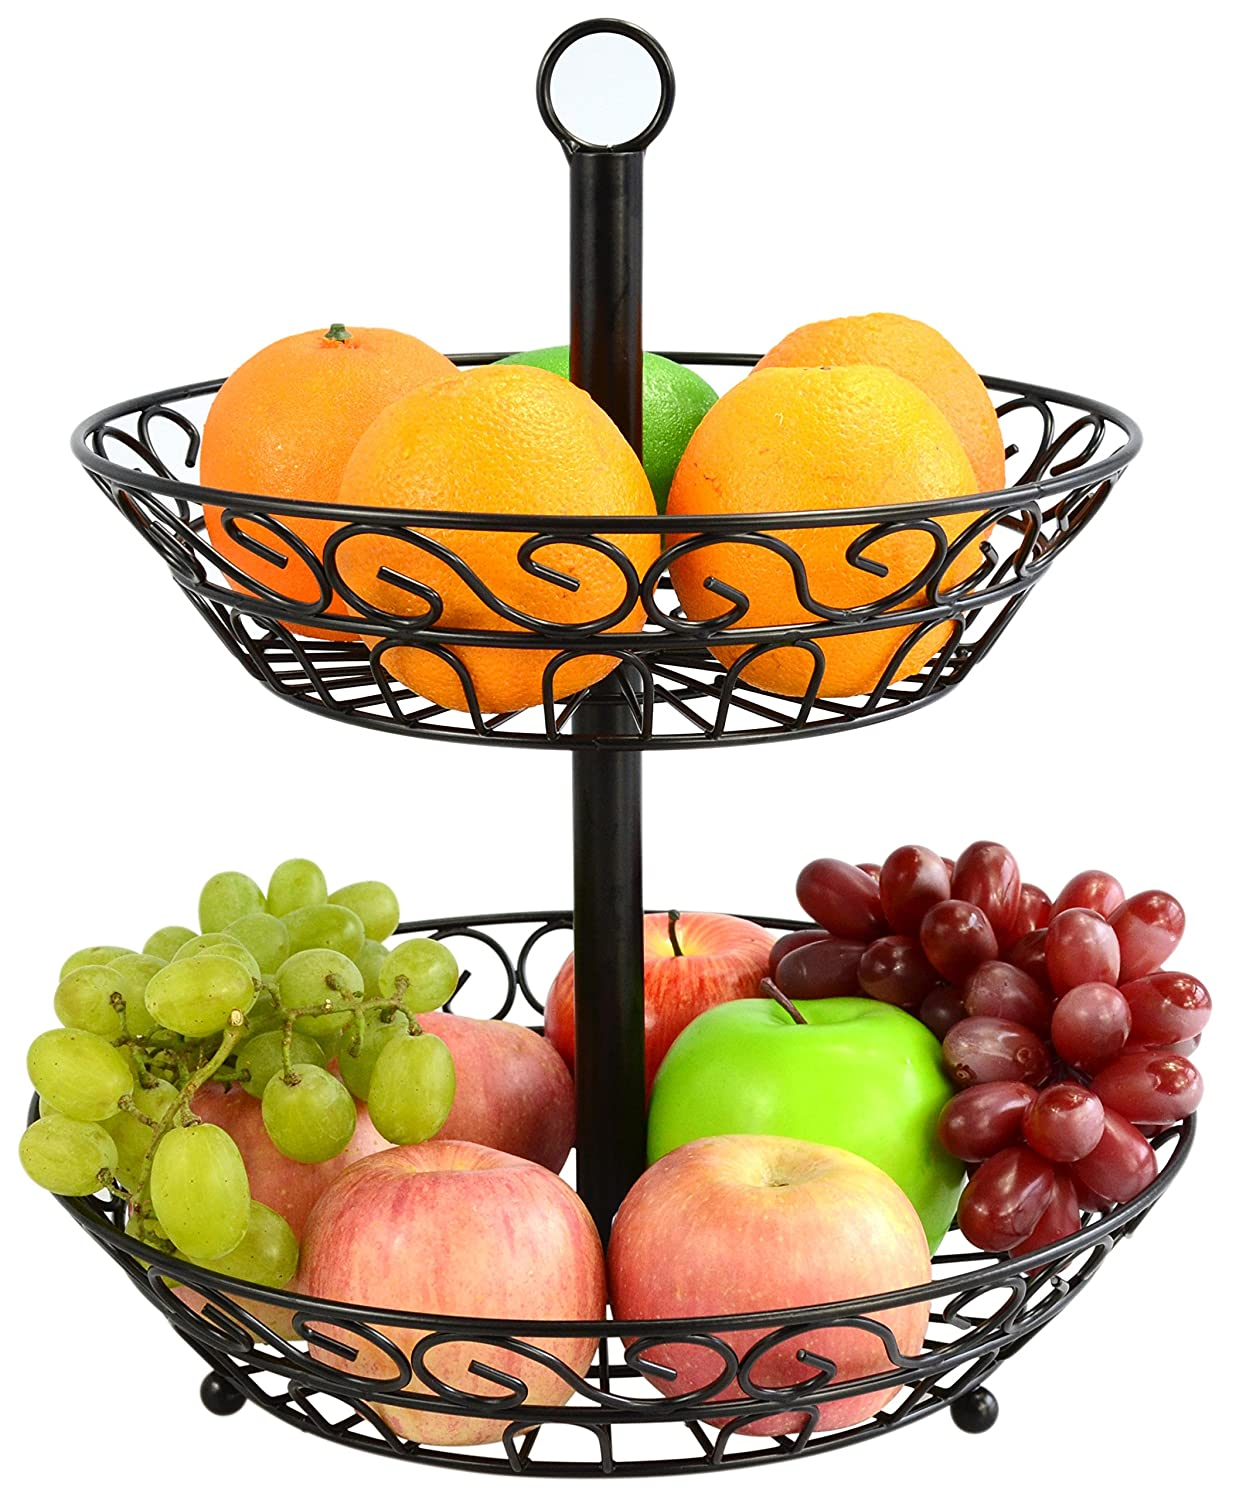 Amazon.com: Surpahs 2 Tier Countertop Fruit Basket Stand: Kitchen U0026 Dining